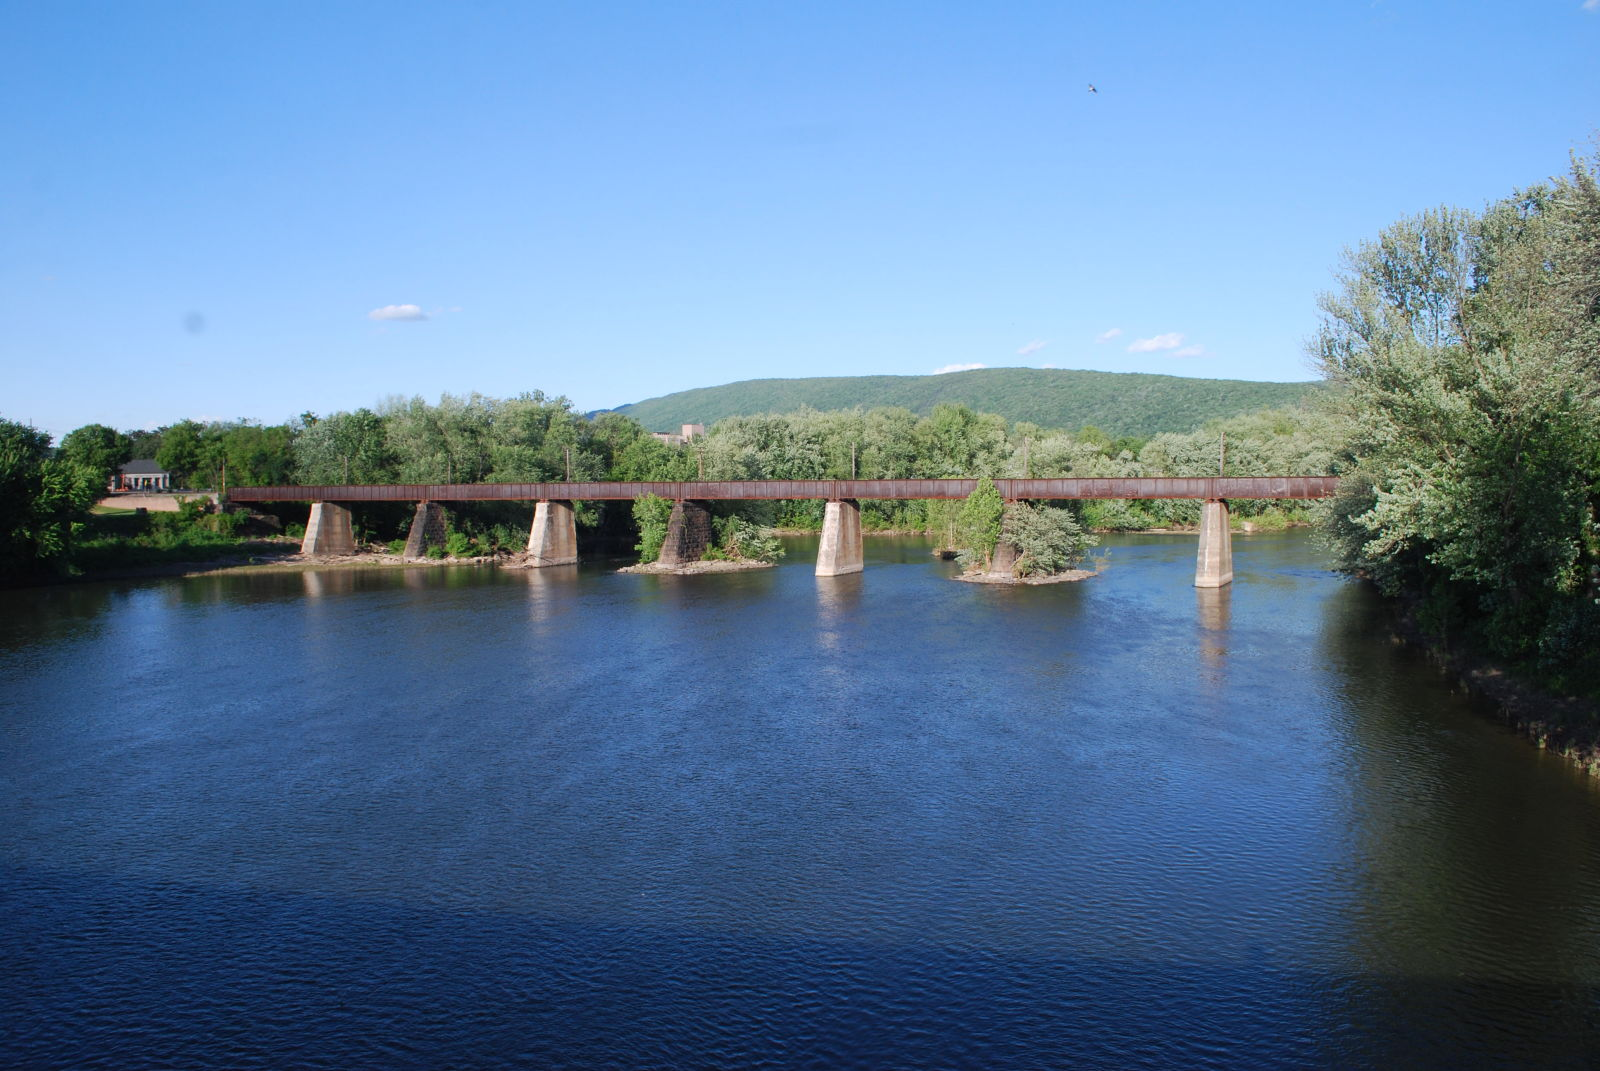 Juniata River Bridge 1